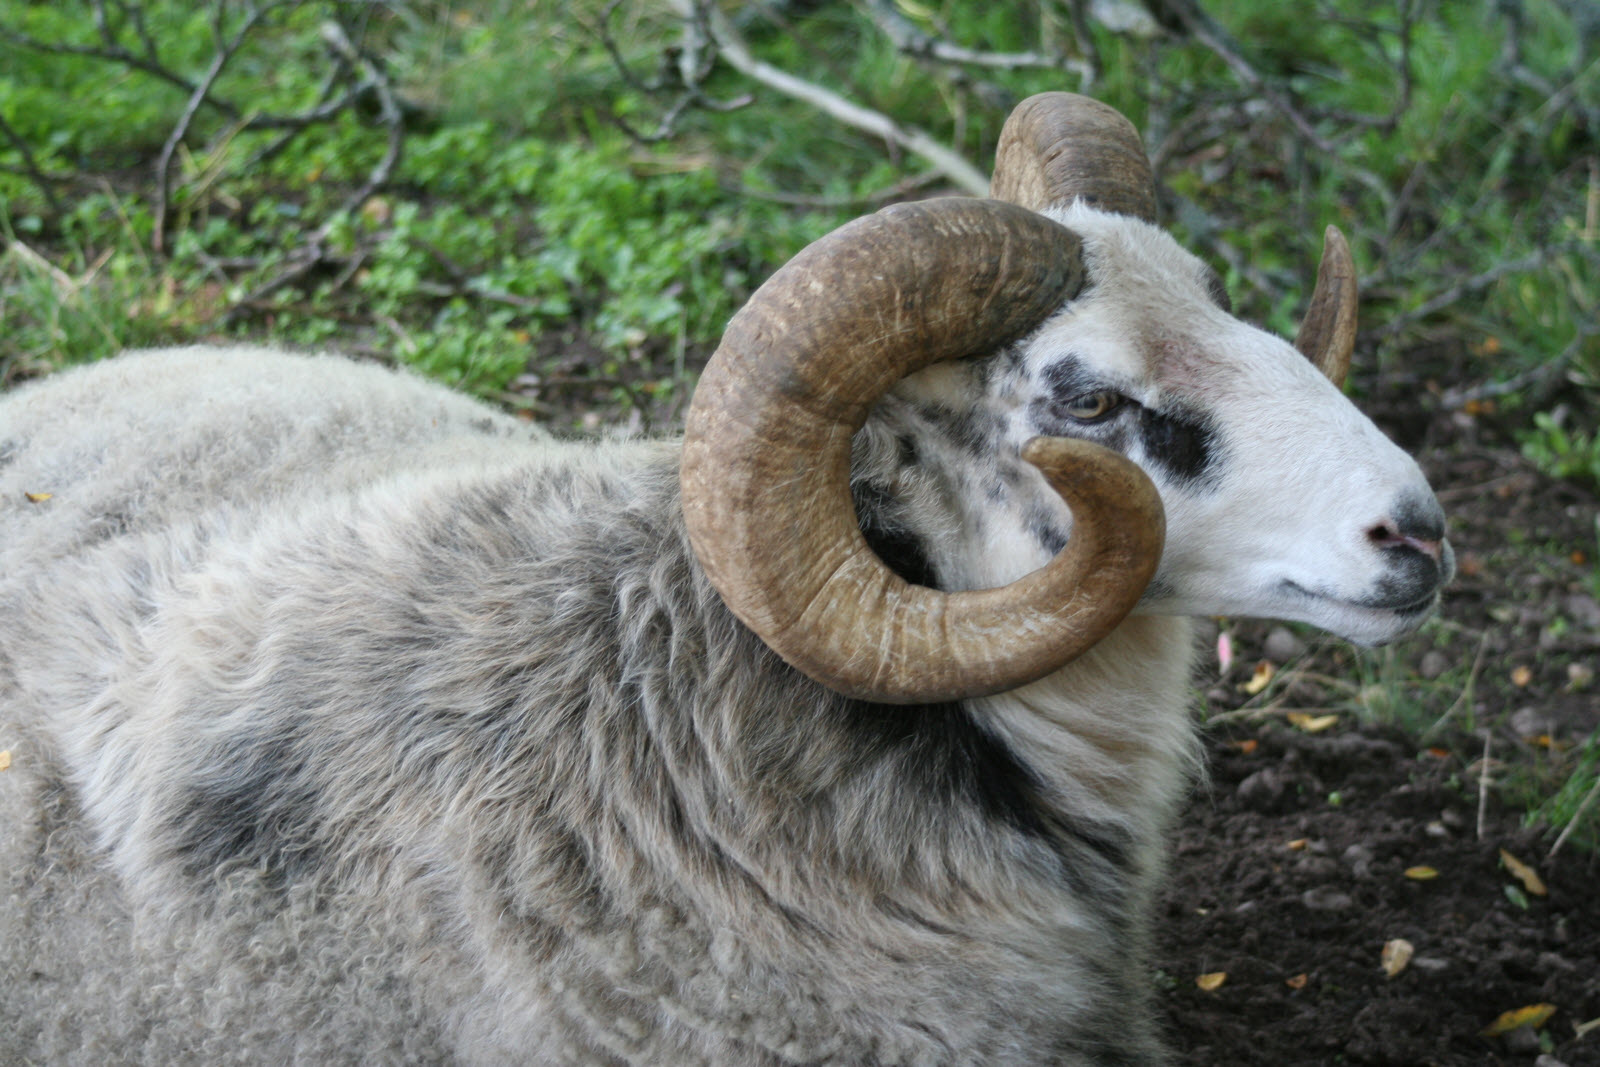 Gotlands sheep